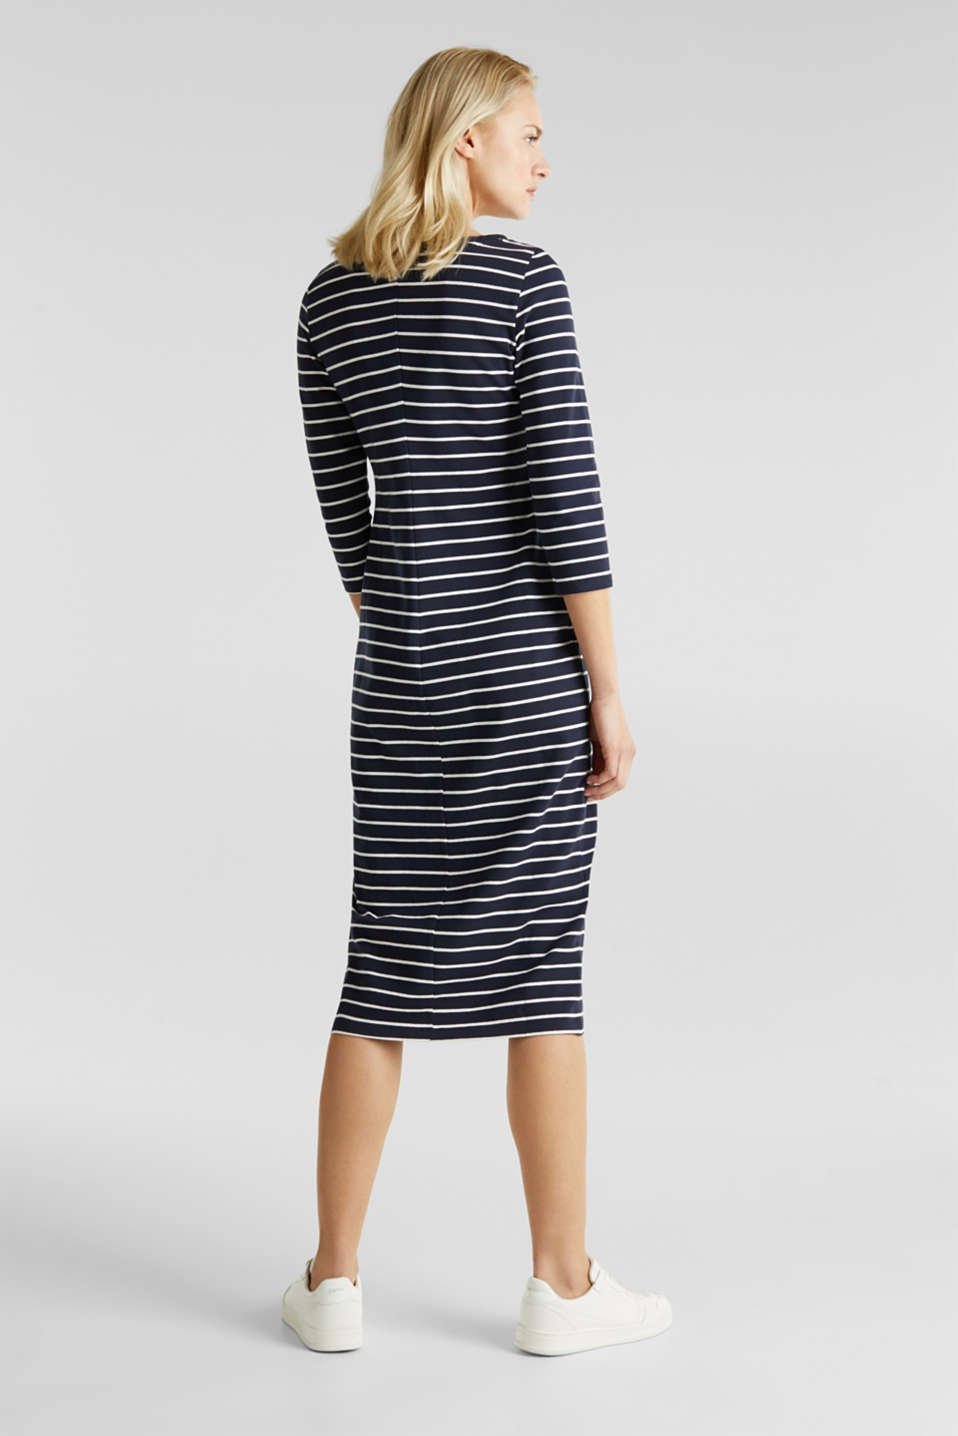 Midi dress in stretch jersey, NAVY, detail image number 2